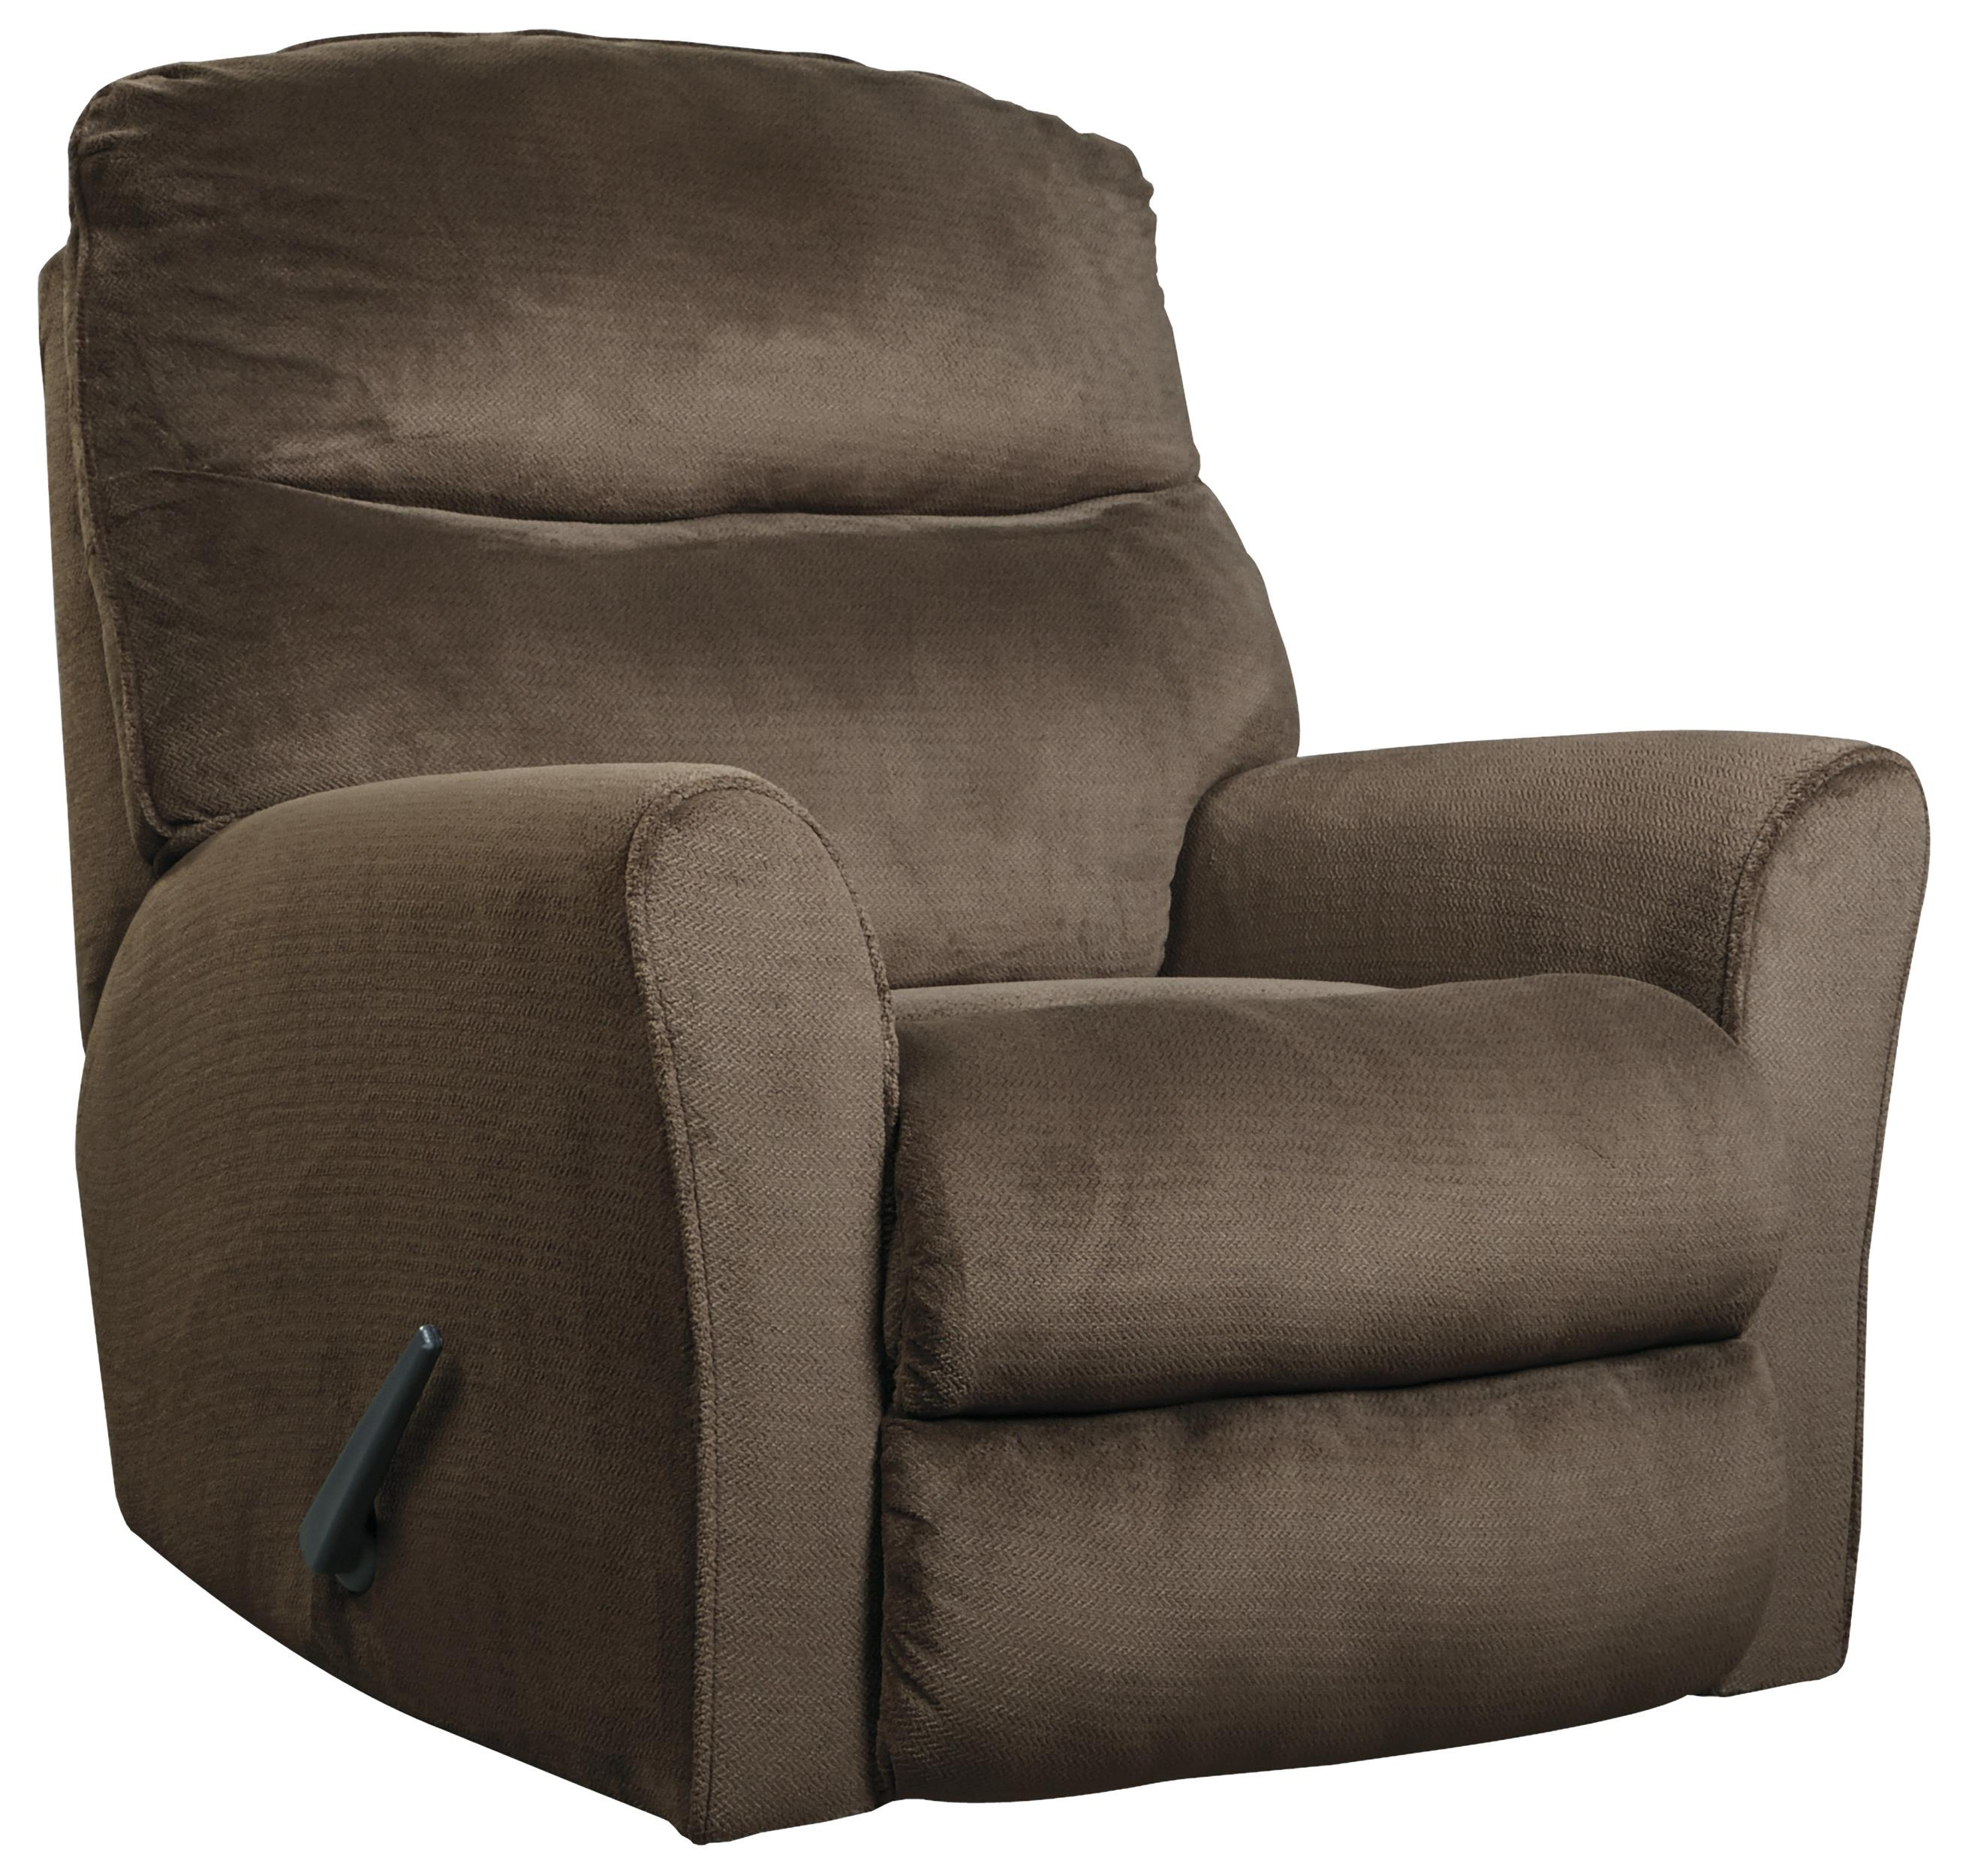 Signature Design by Ashley Cossette Rocker Recliner - Item Number: 6730225